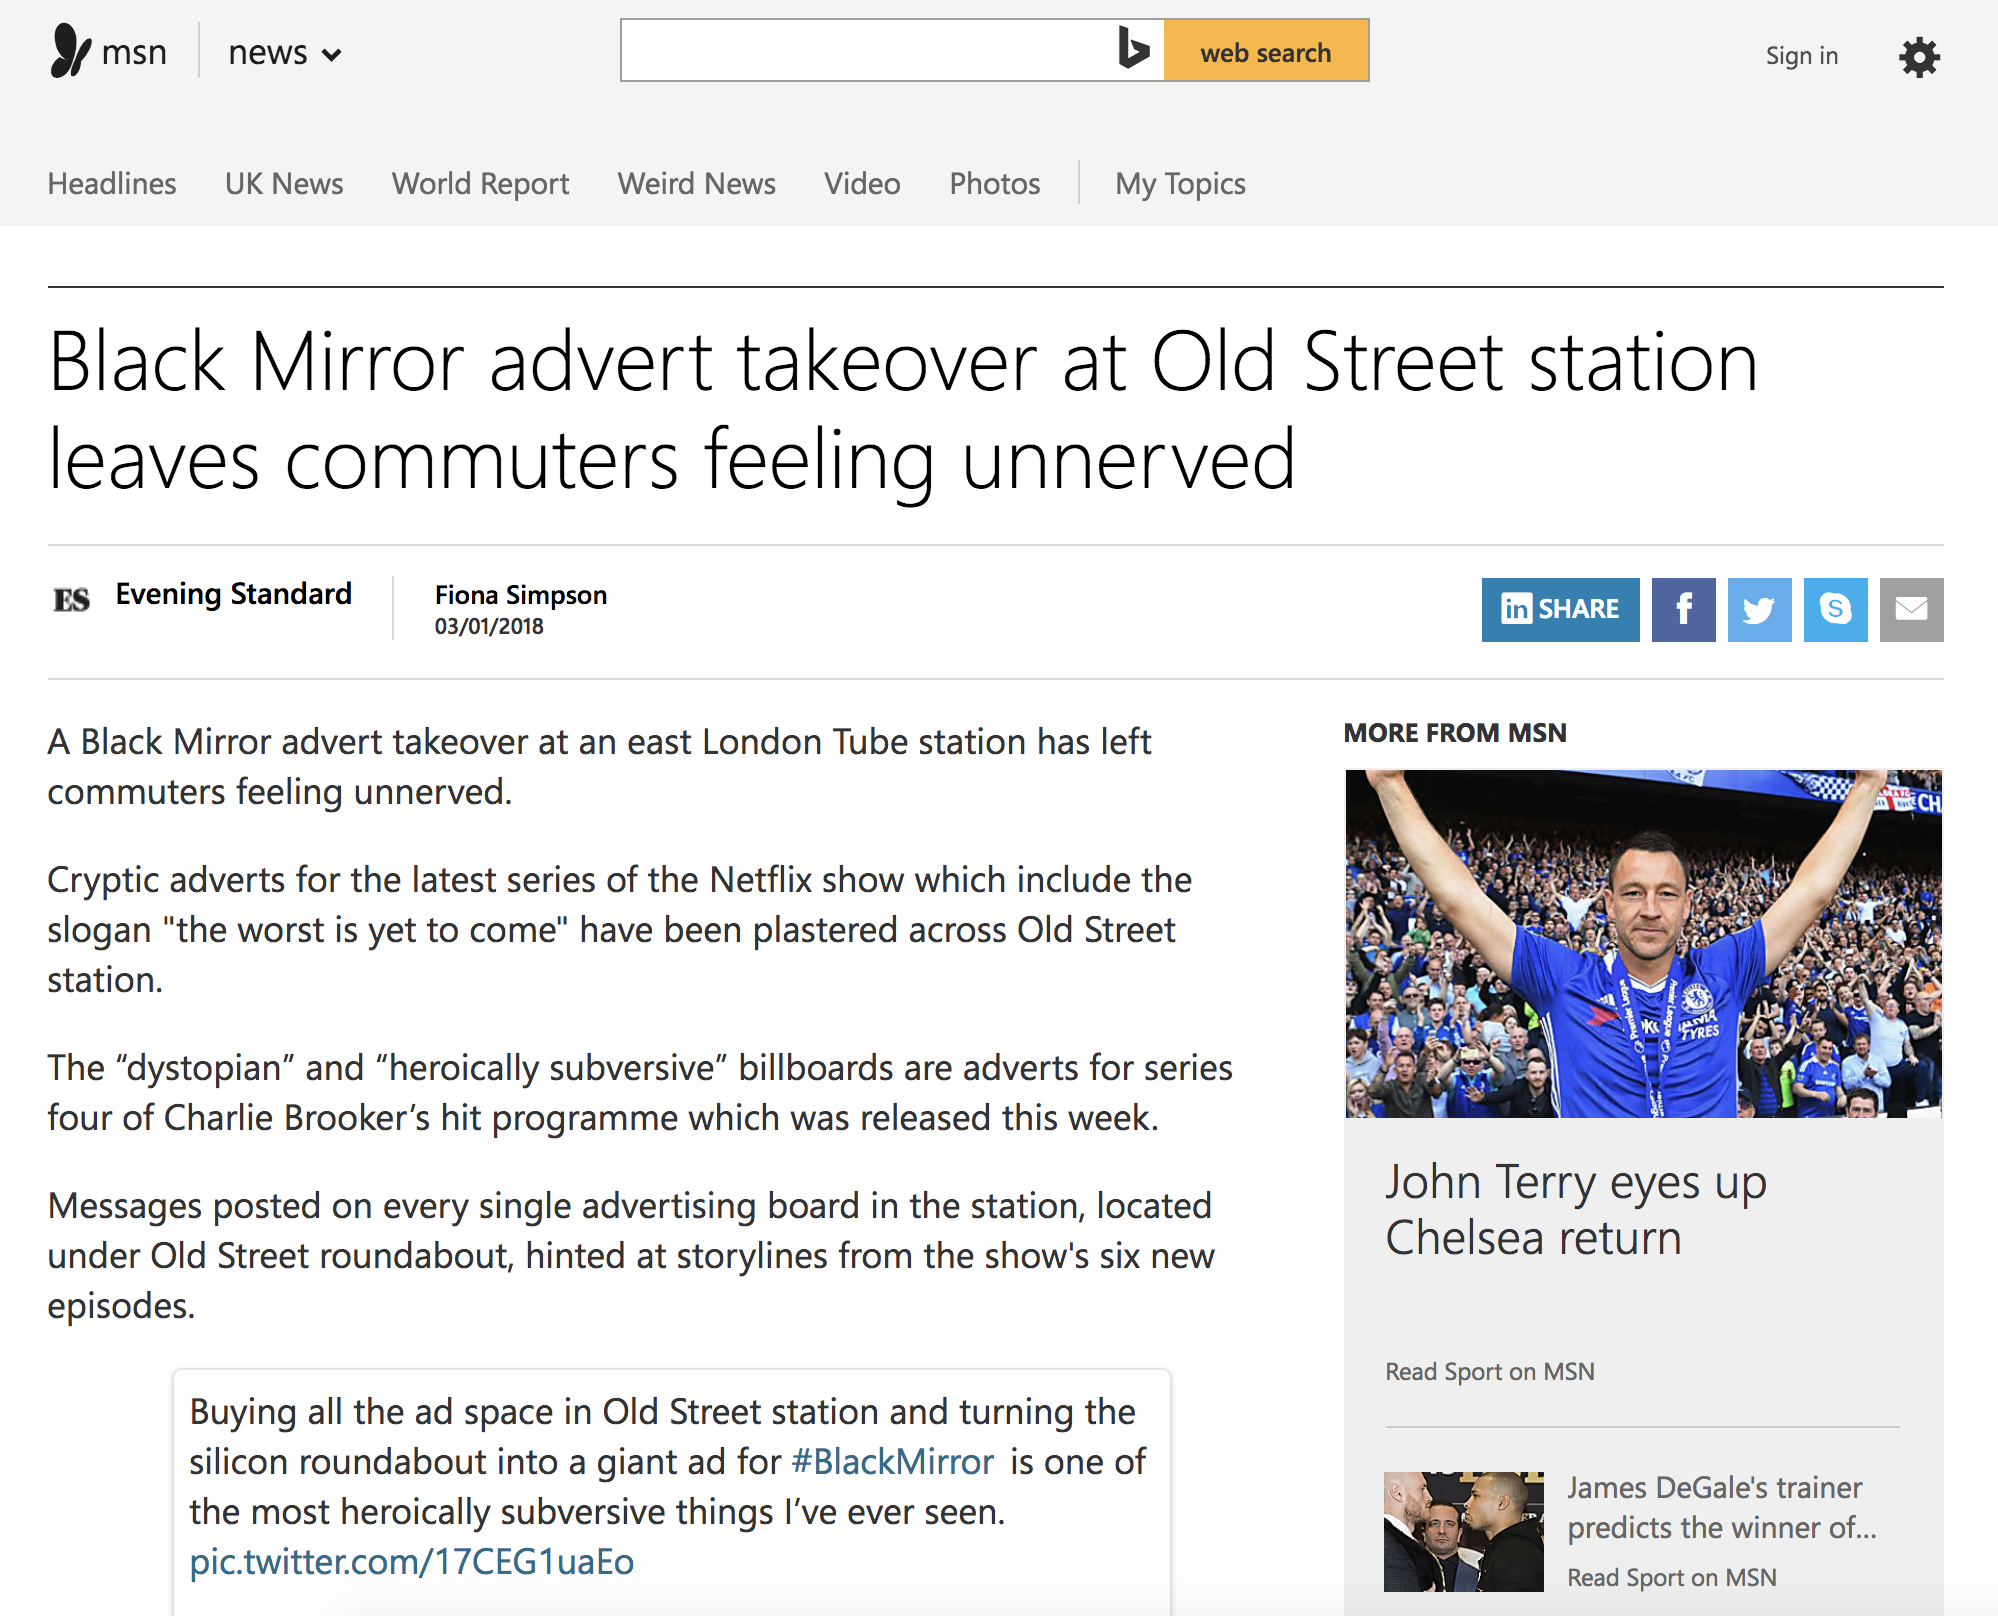 Black Mirror advert takeover at Old Street station leaves commuters feeling unnerved